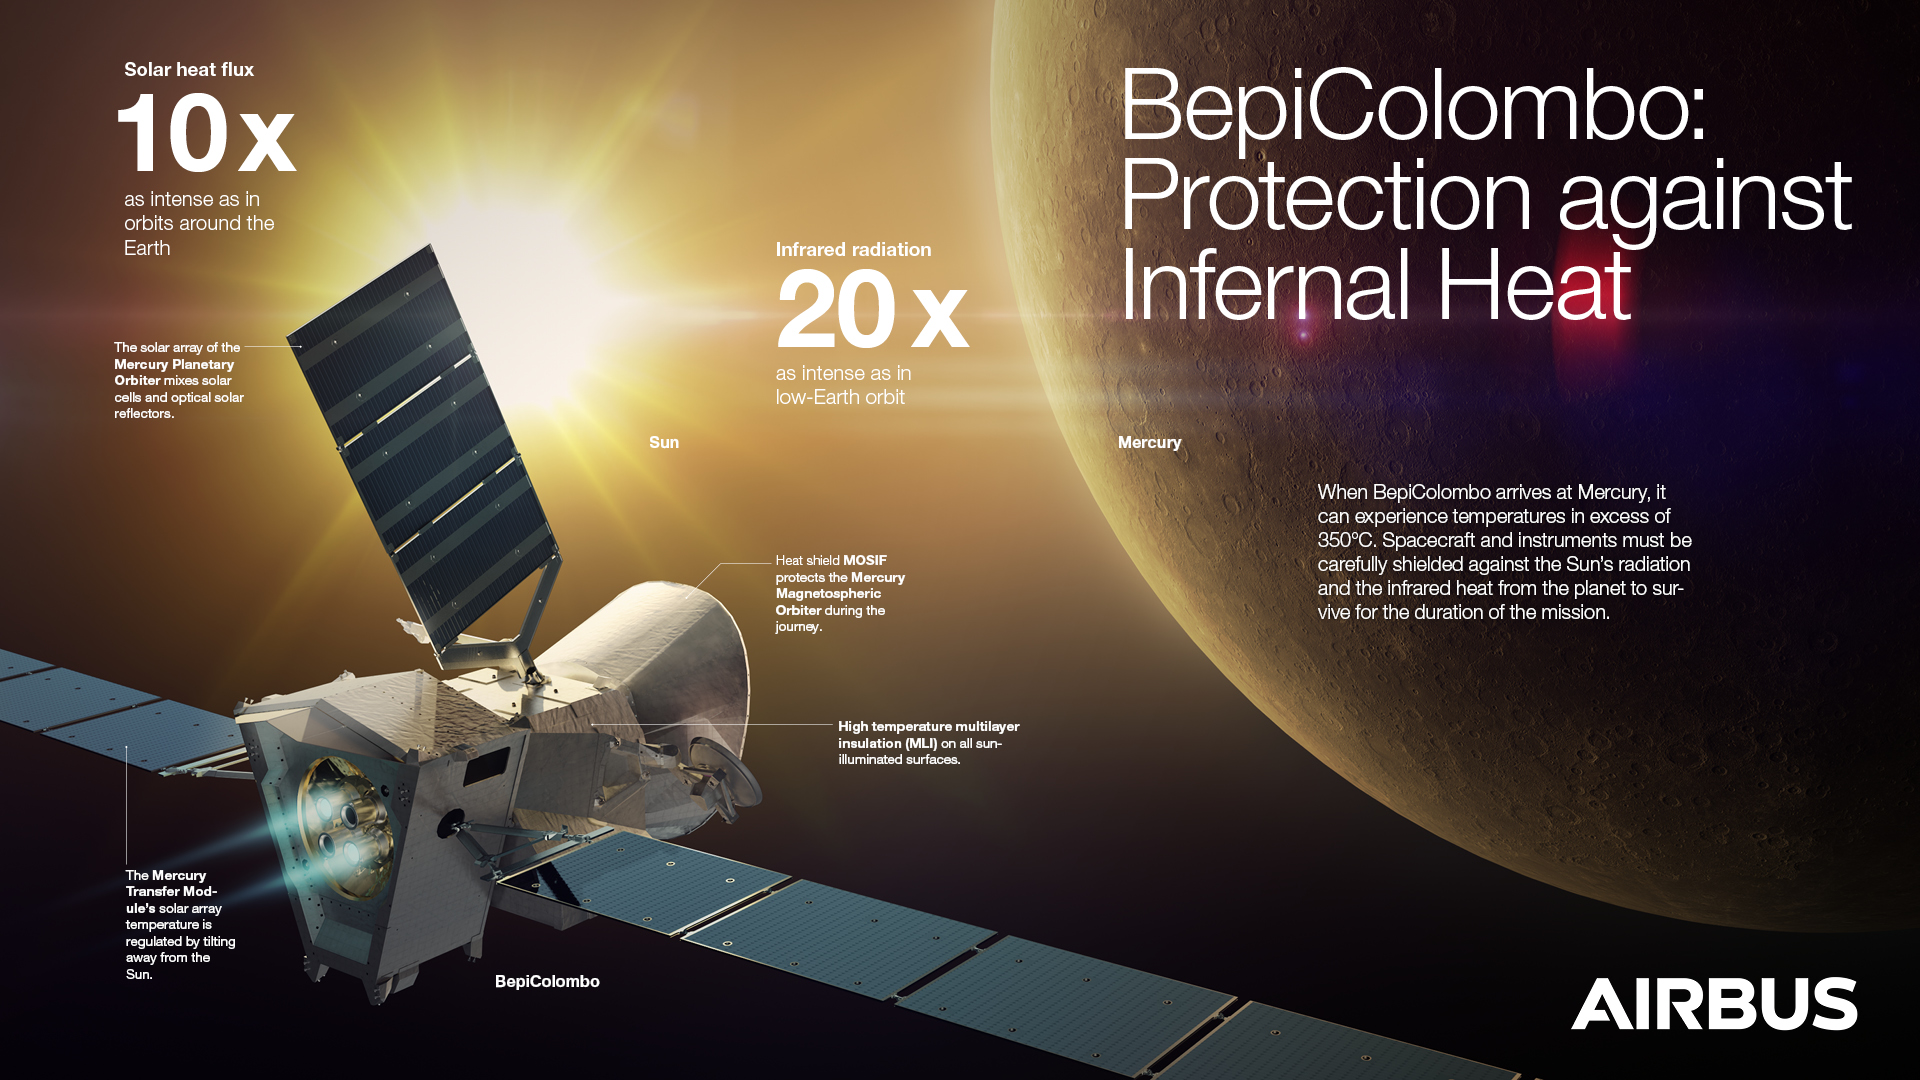 An infographic highlighting how the BepiColombo satellite, launched on a mission to explore Mercury, is protected against heat during its journey in space.